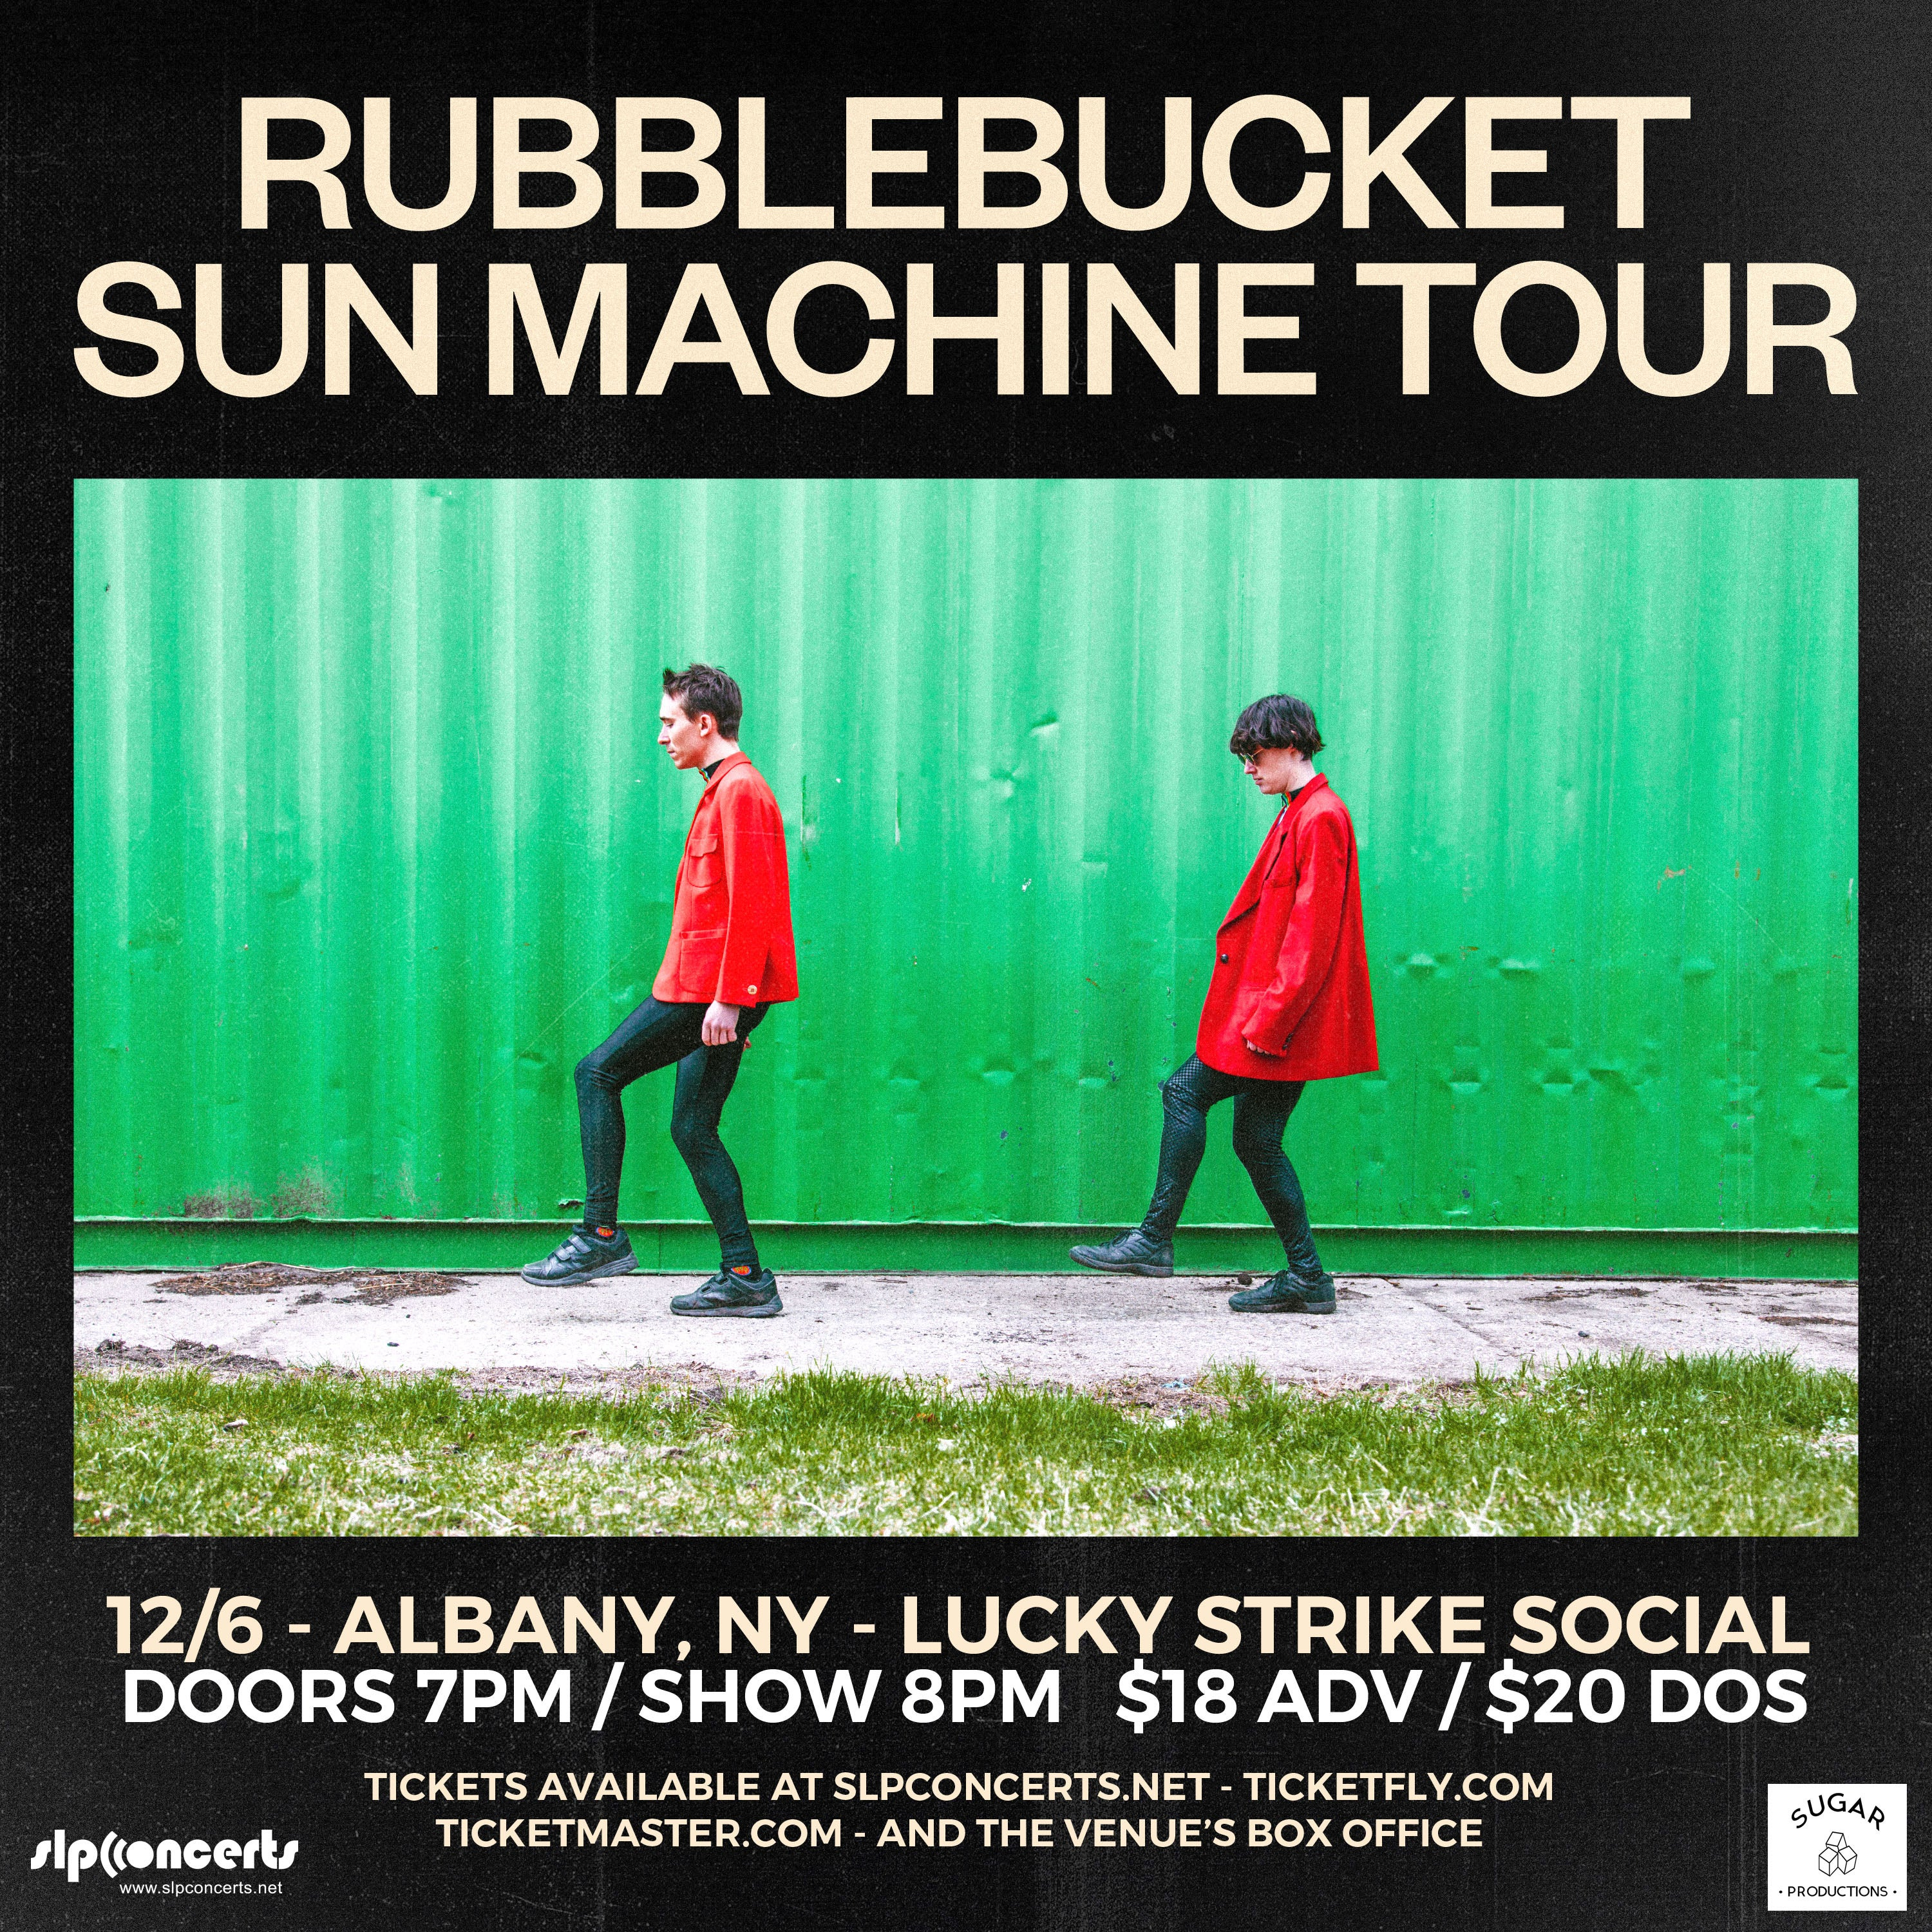 RUBBLEBUCKET ADMAT.jpg